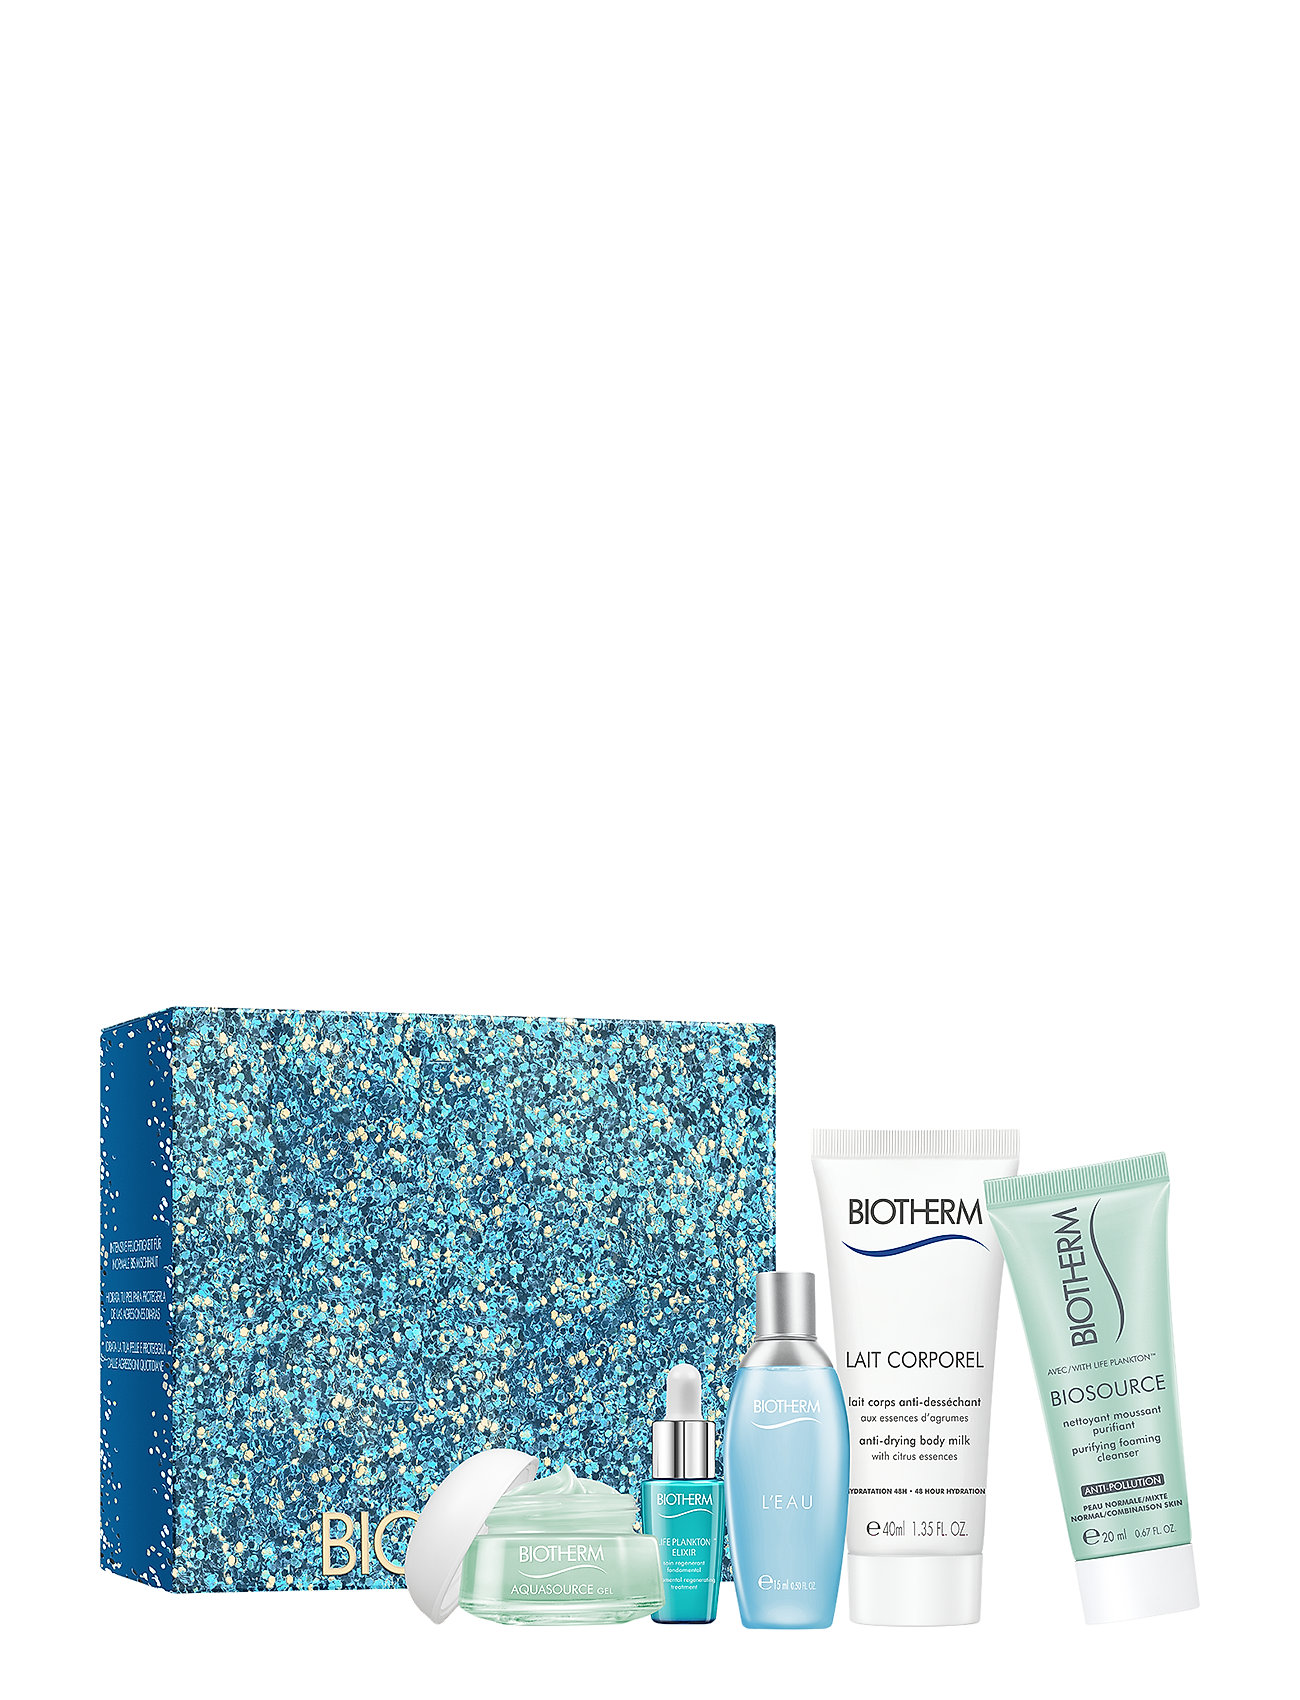 Biotherm Hydration Gift box - NO COLOUR